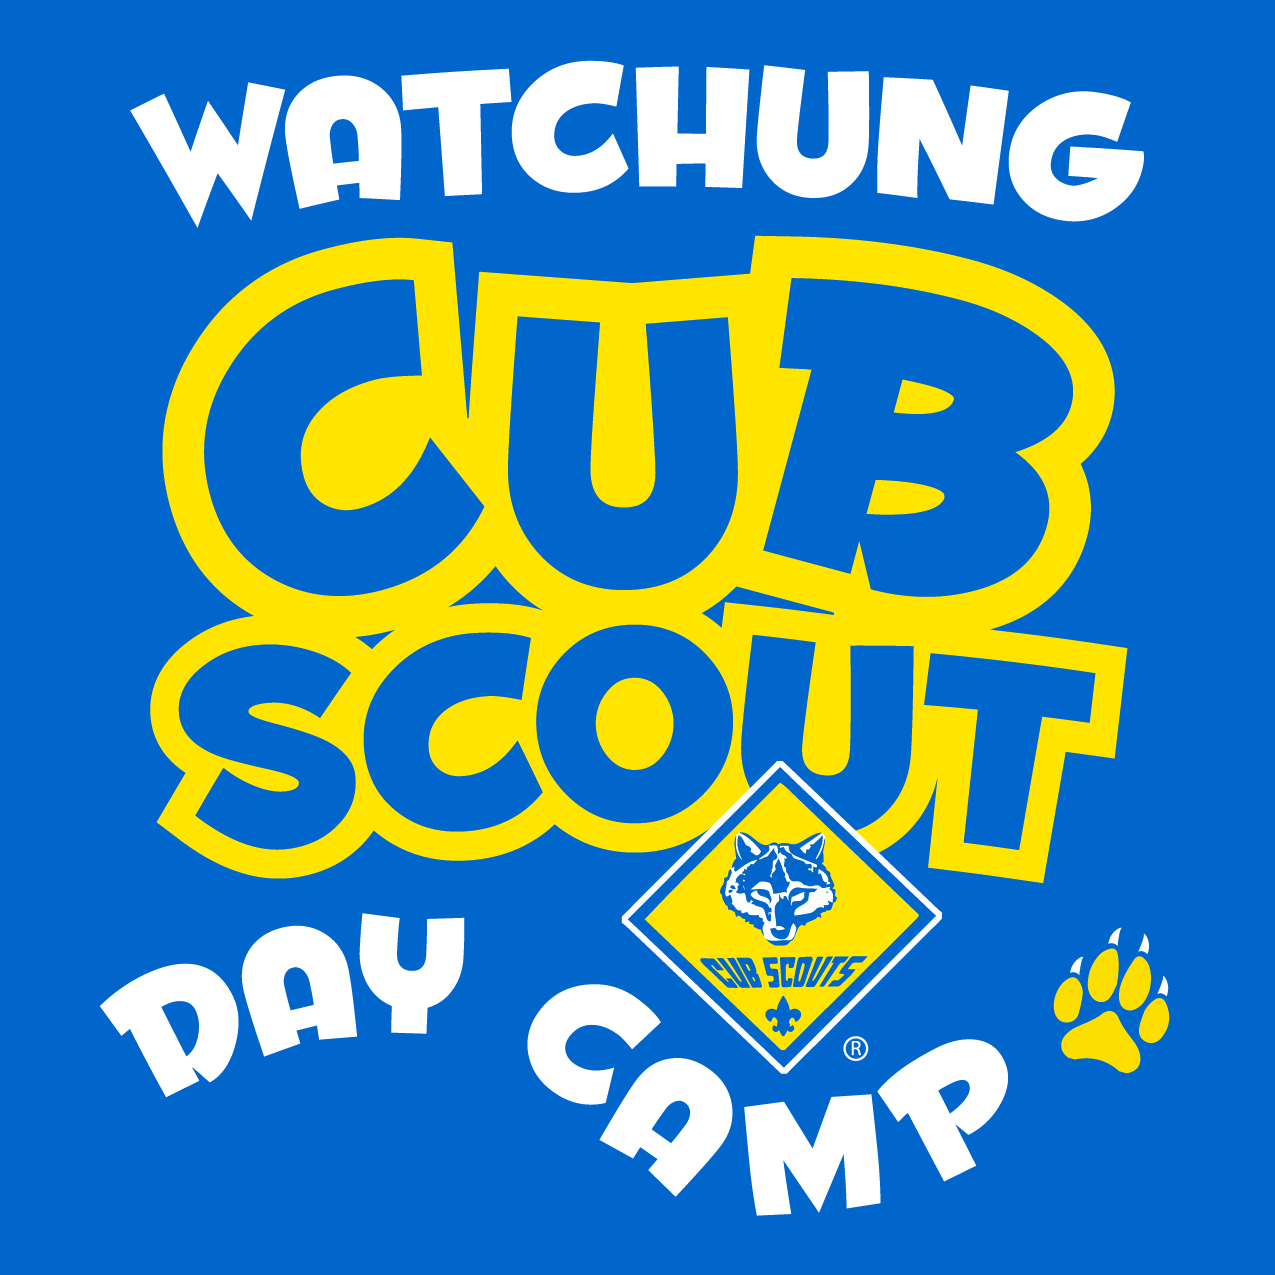 patriots 39 path council 2016 watchung cub scout day camp. Black Bedroom Furniture Sets. Home Design Ideas